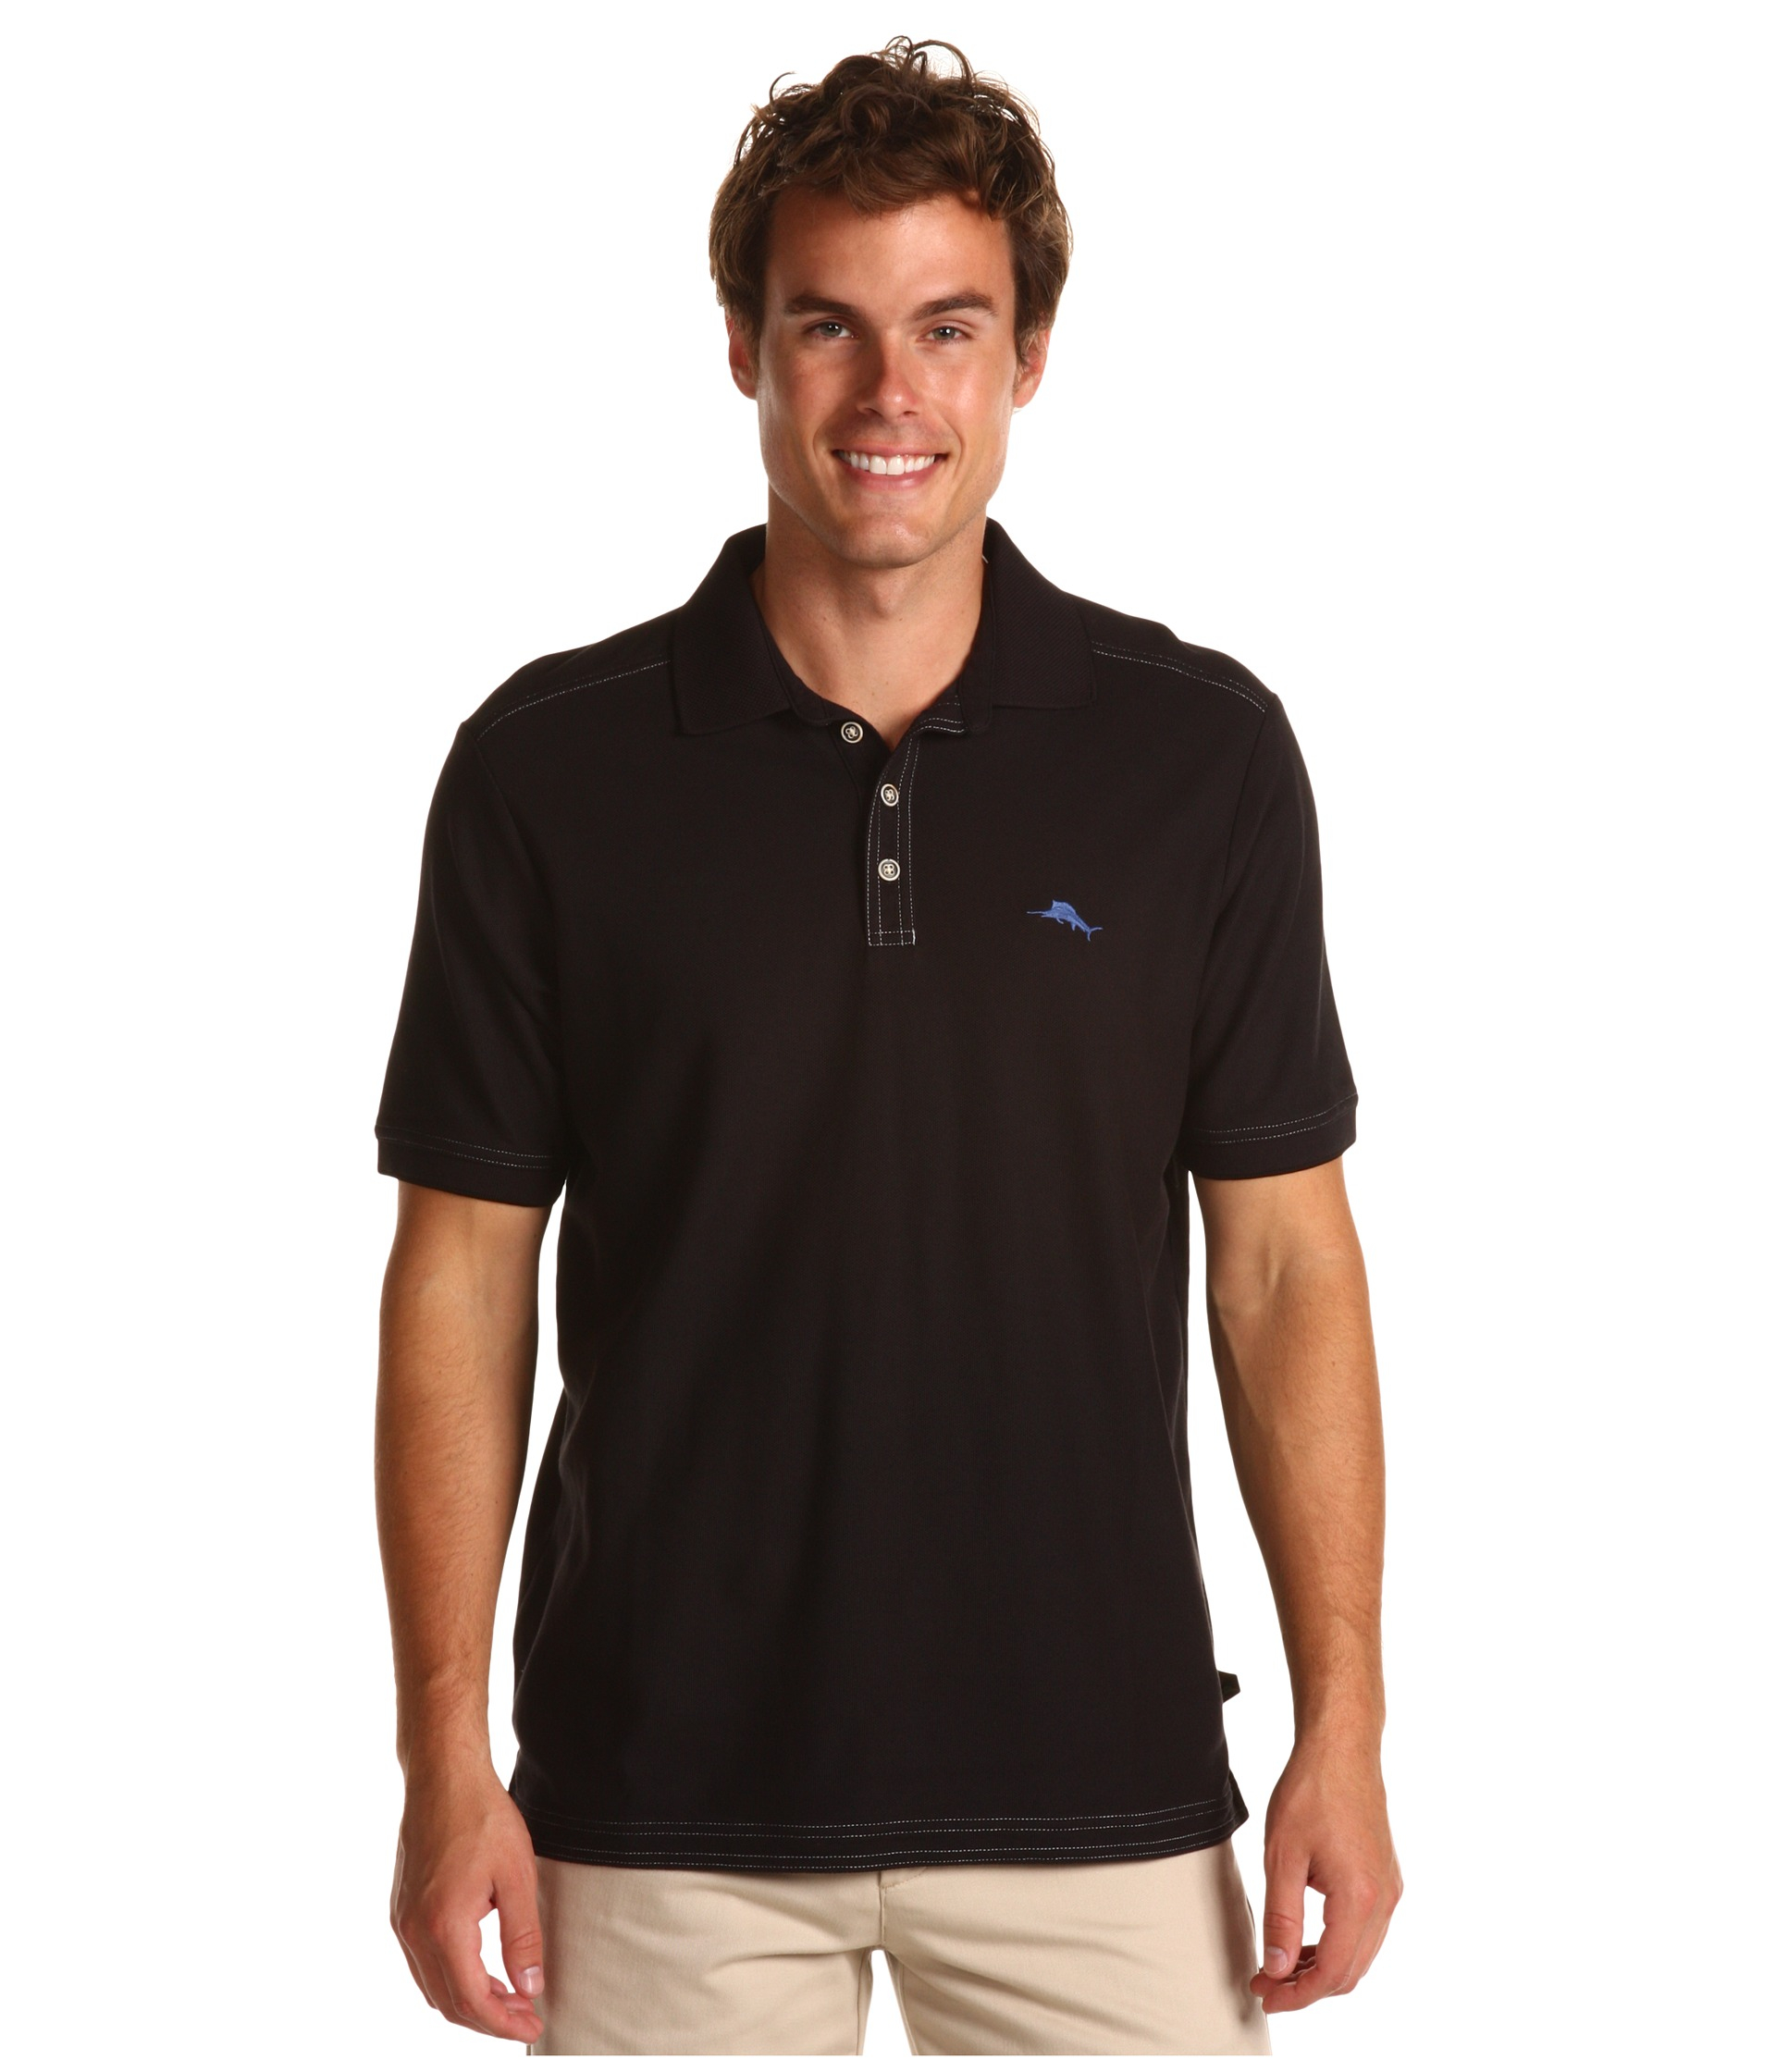 Tommy Bahama The Emfielder Polo Shirt In Black For Men